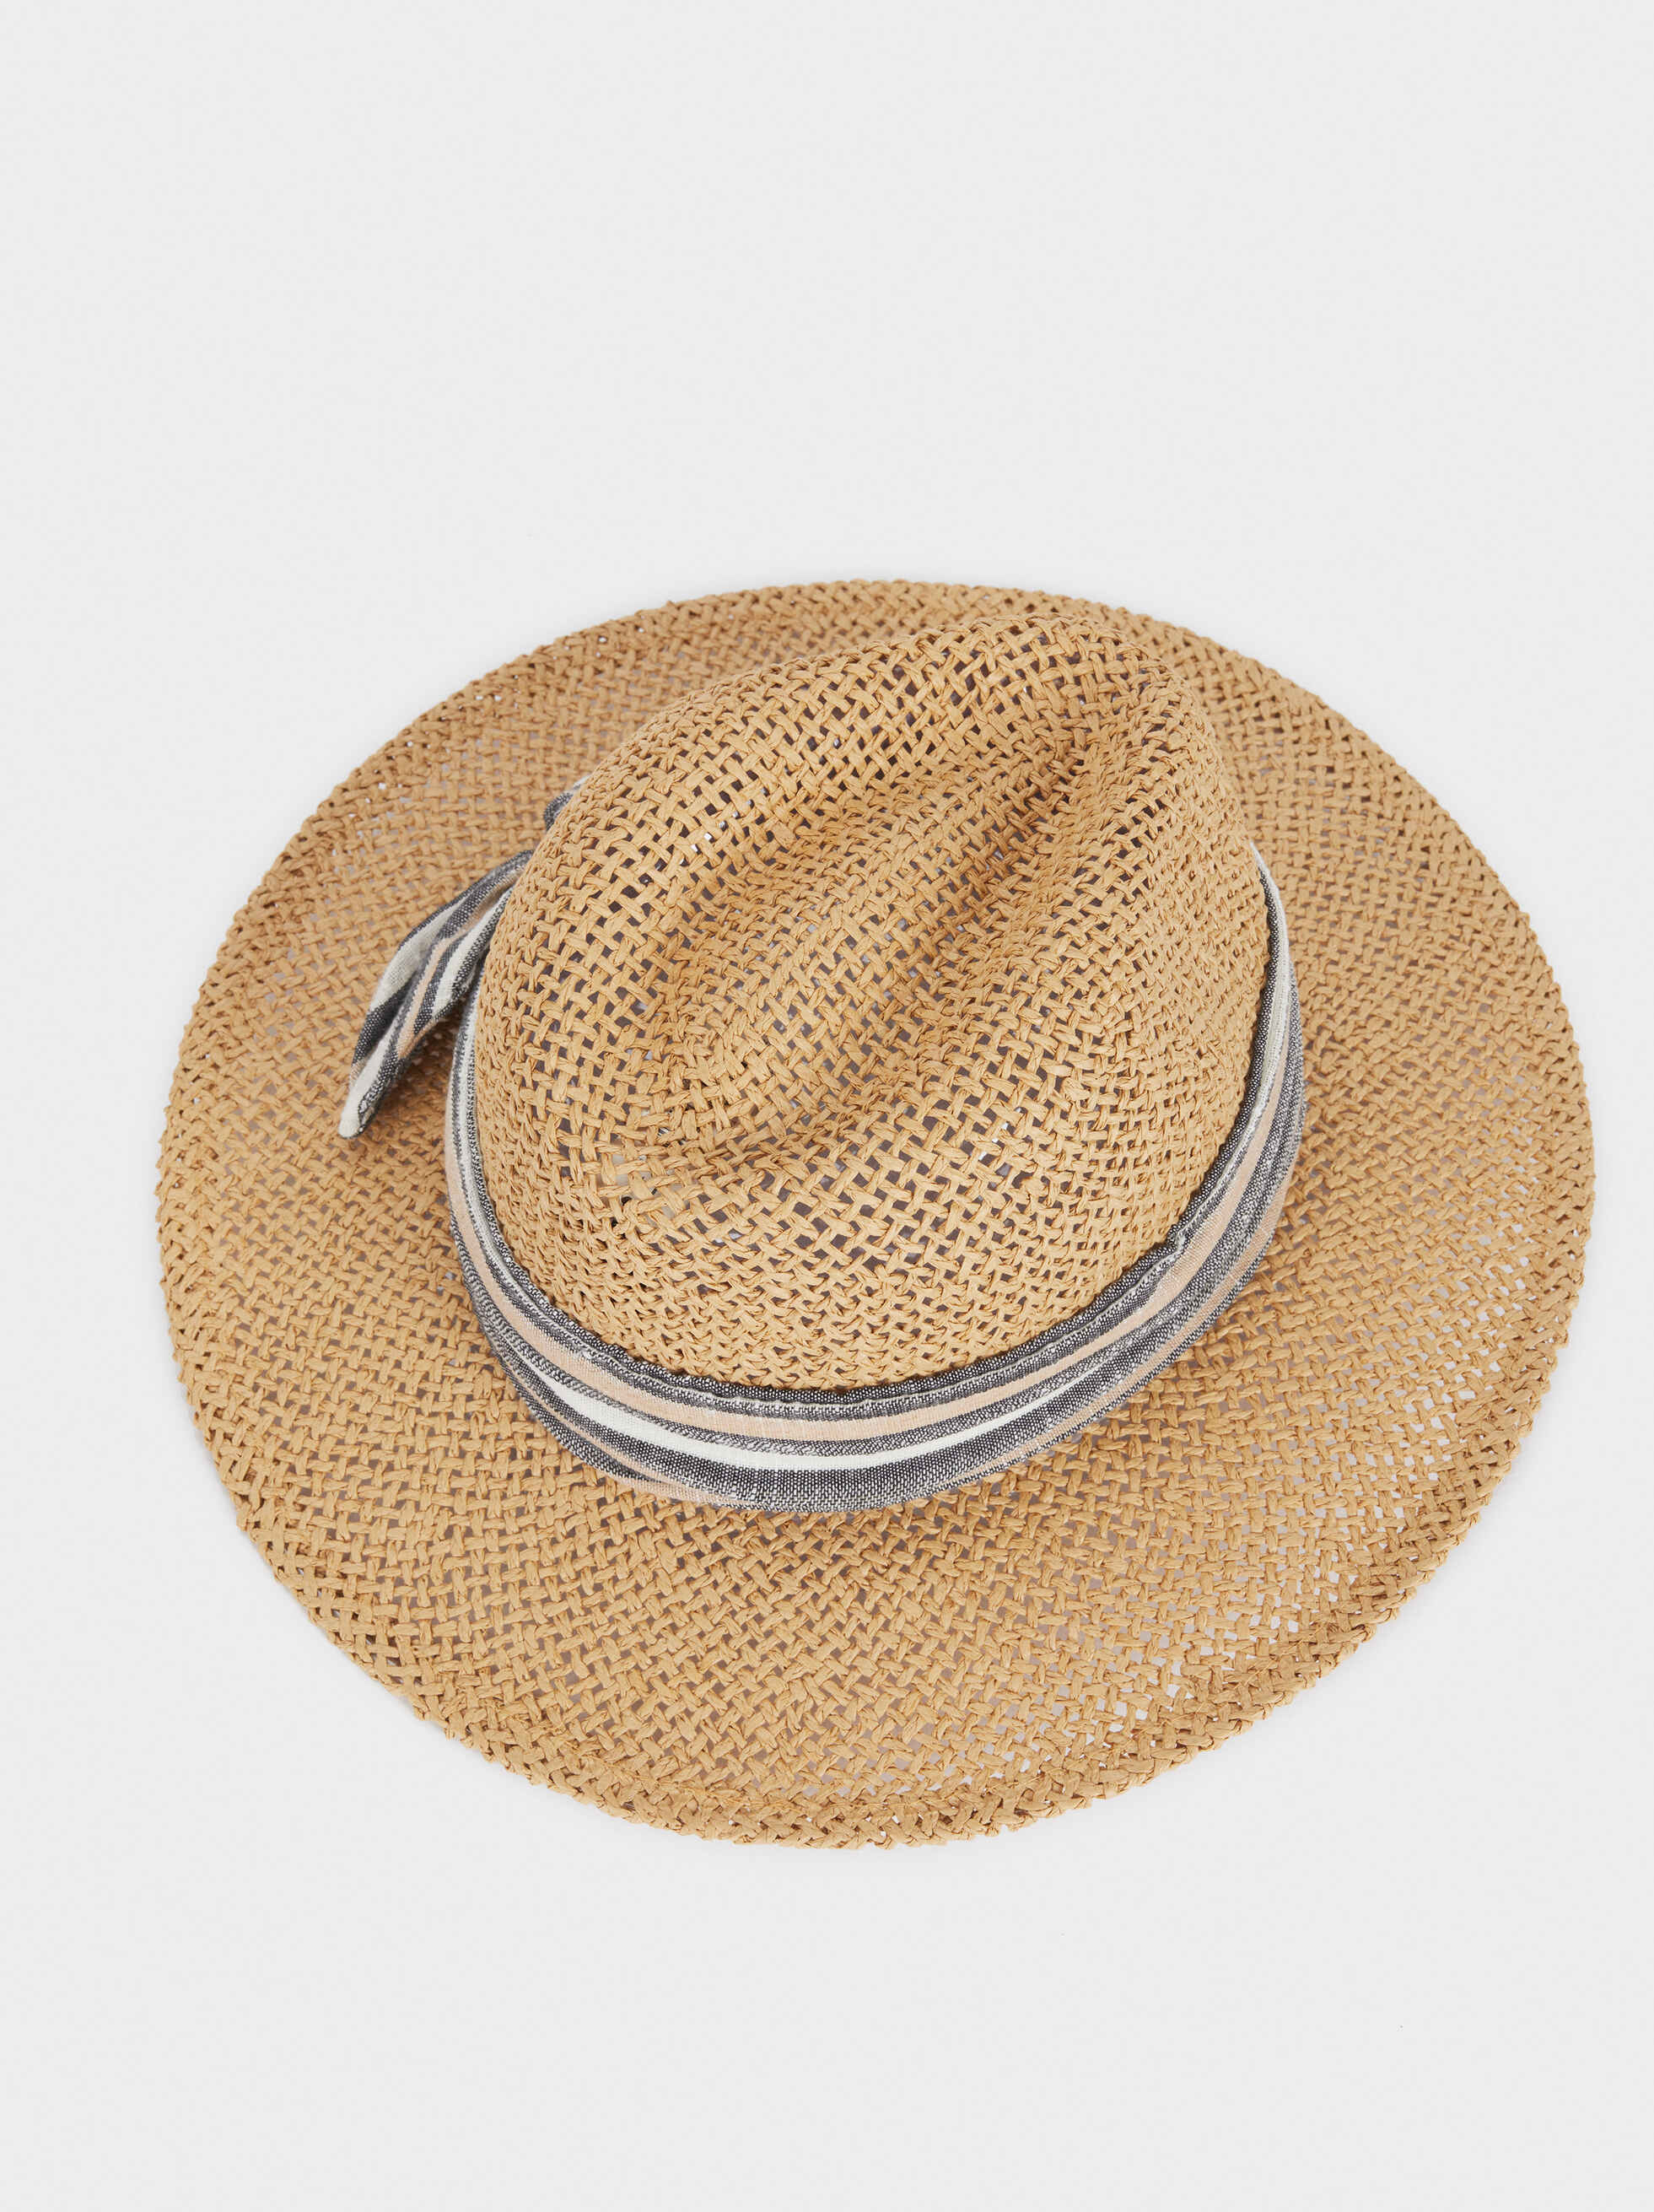 Textured Raffia Hat, Beige, hi-res